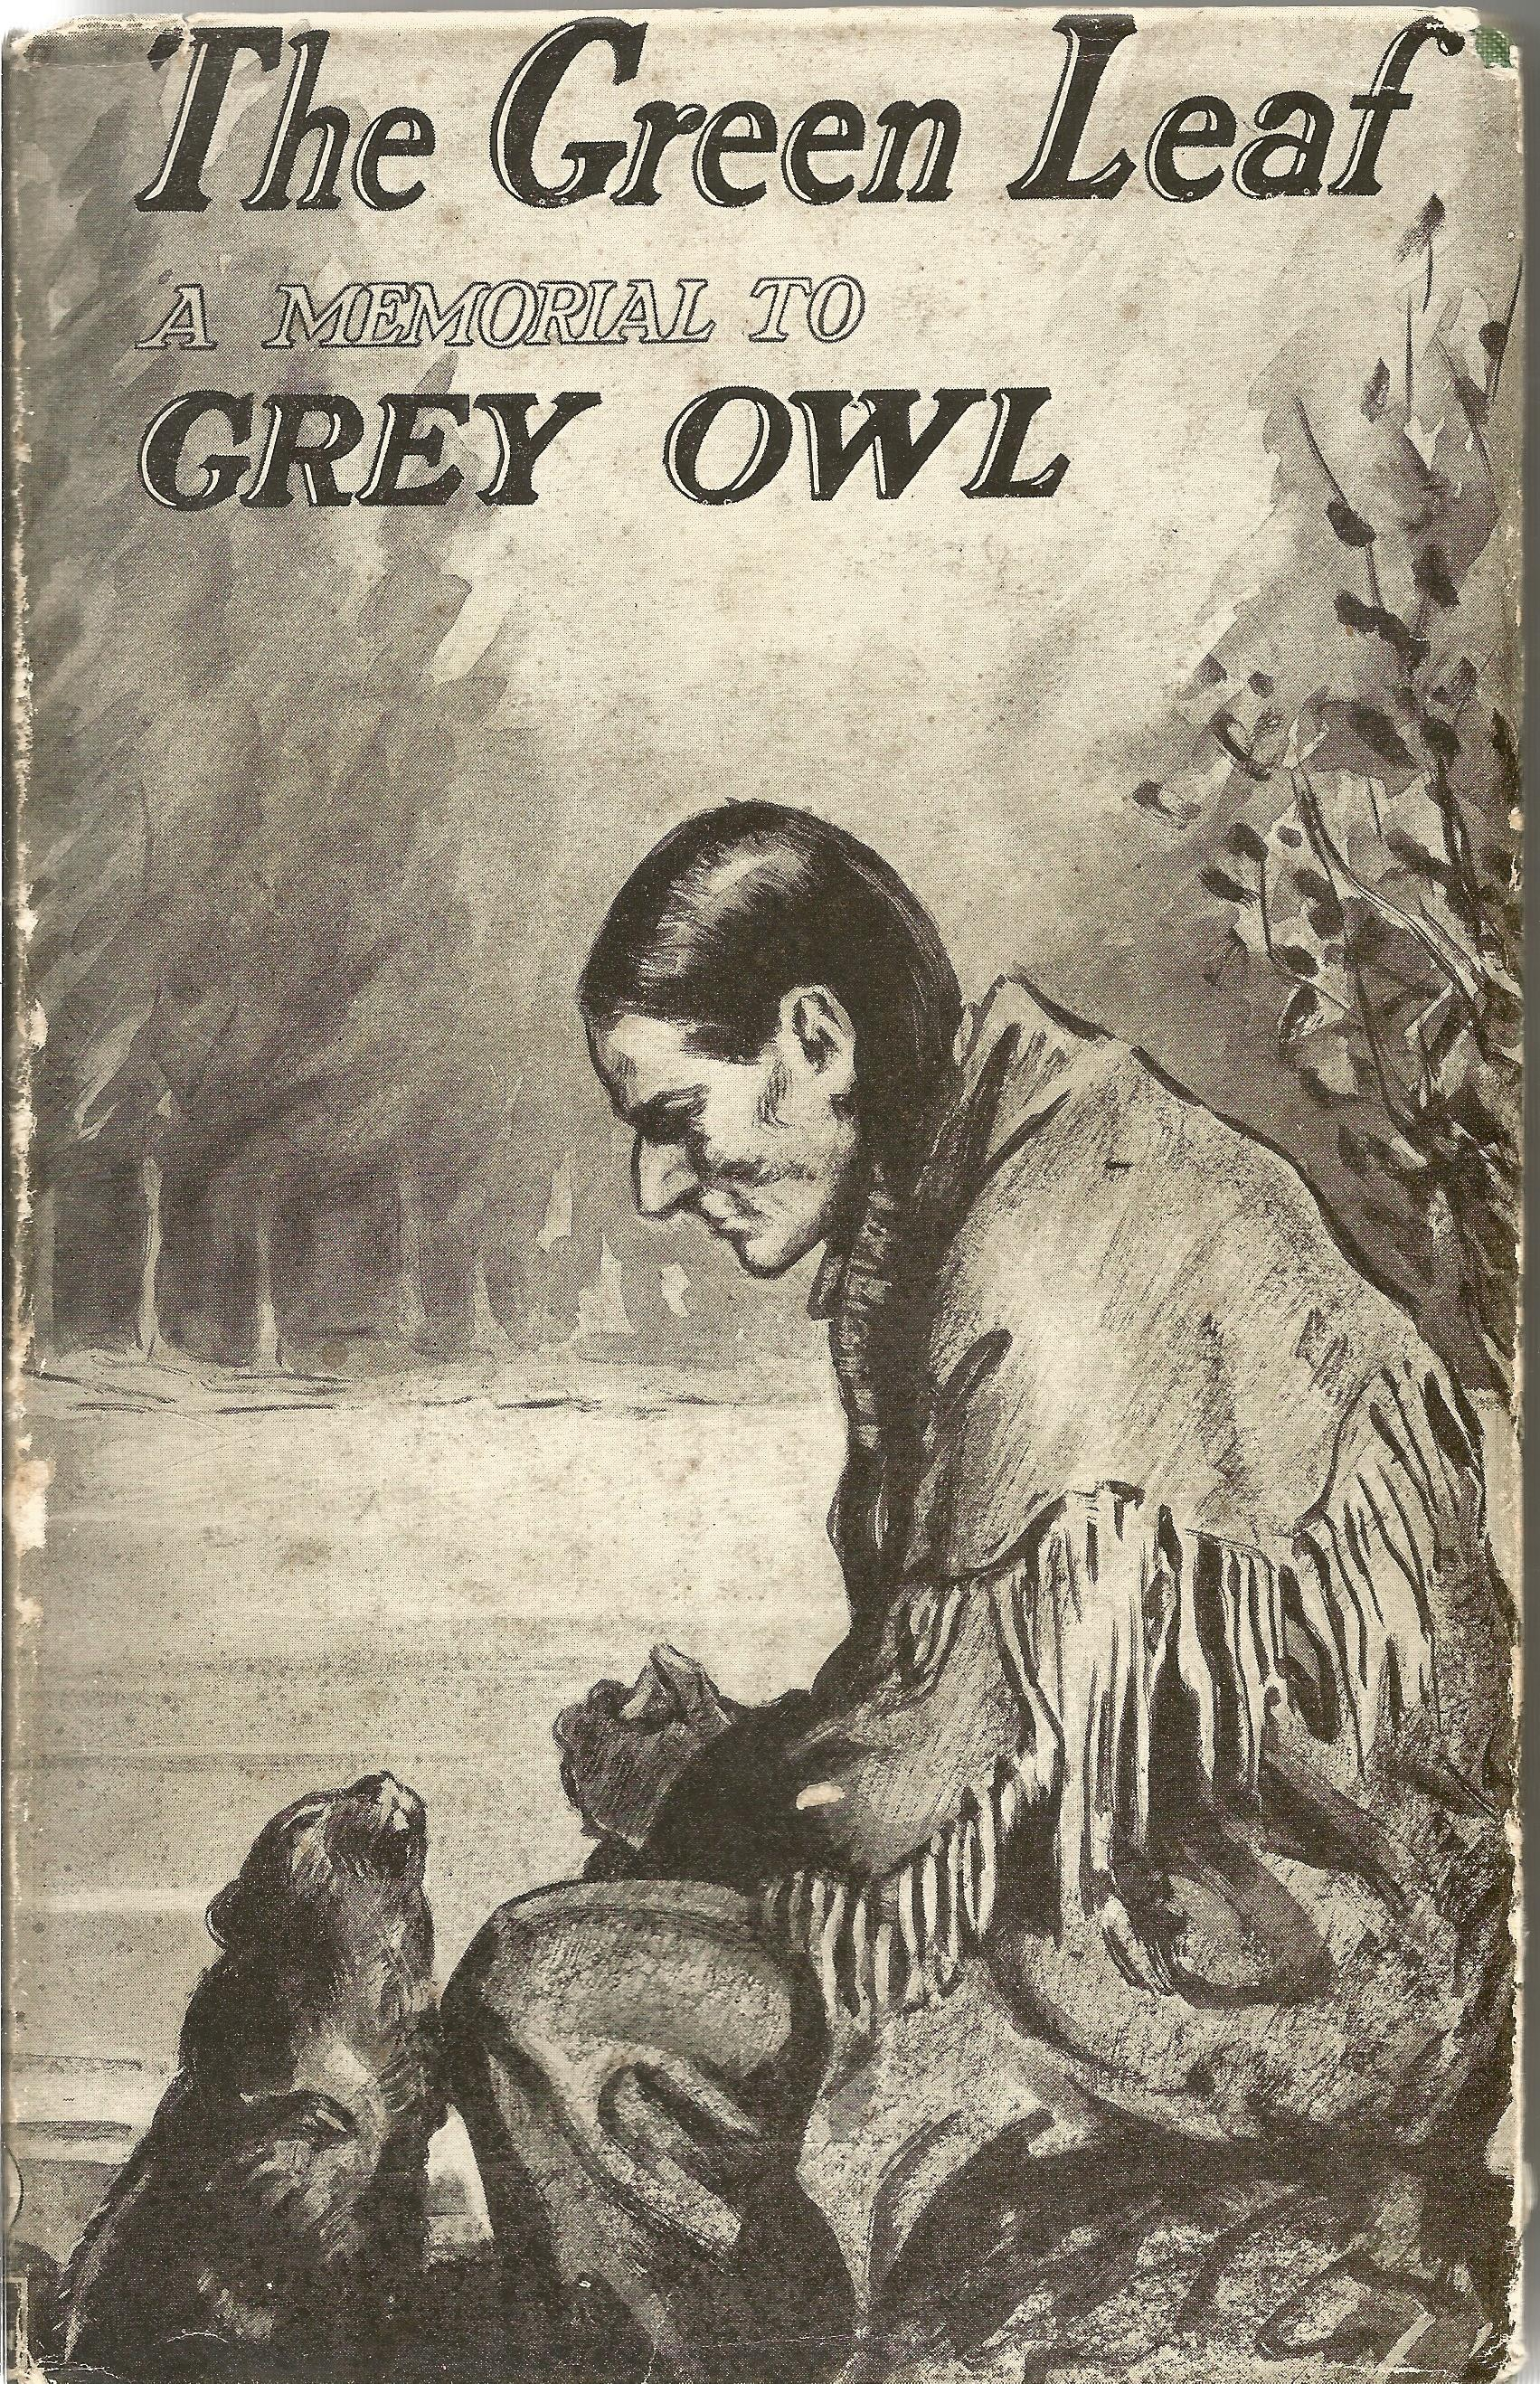 Signed & Framed 8 x10 Picture of Grey Owl, plus Hardback Book The Green Leaf A Tribute to Grey Owl